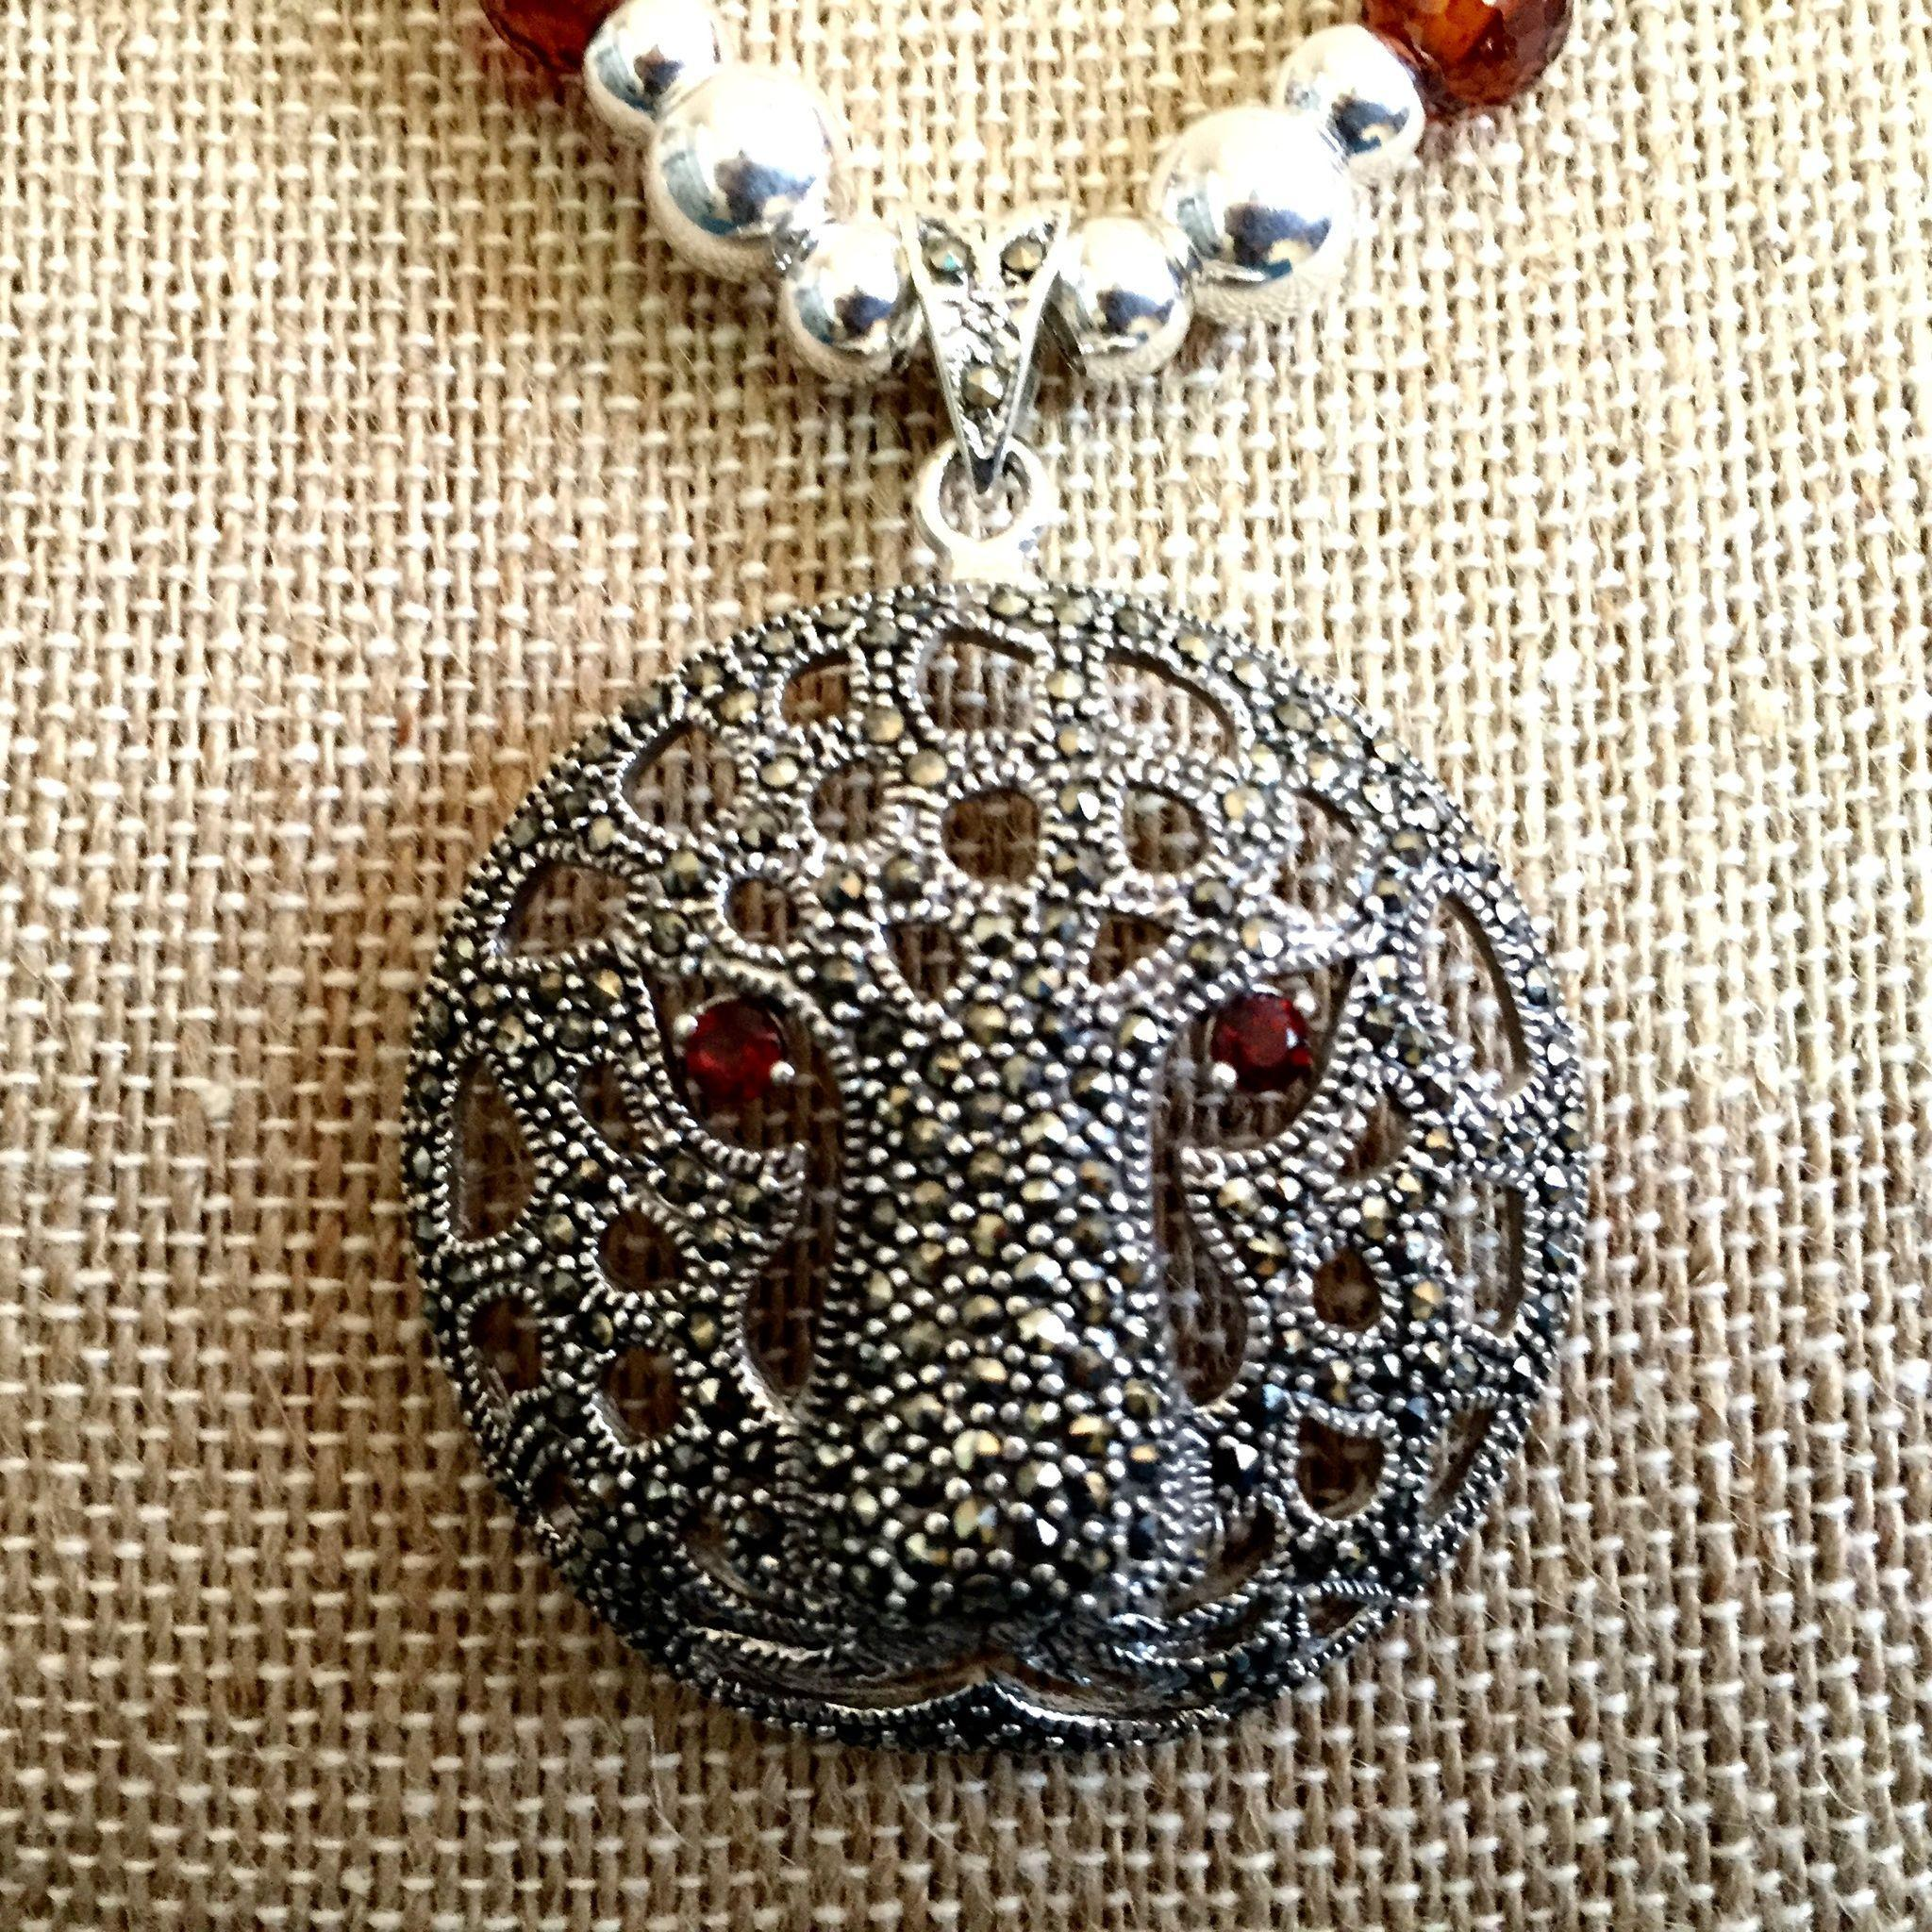 Tiger Totem Necklace of Marcasite, Cubic Zirconia & Sterling Silver, 21 Inches